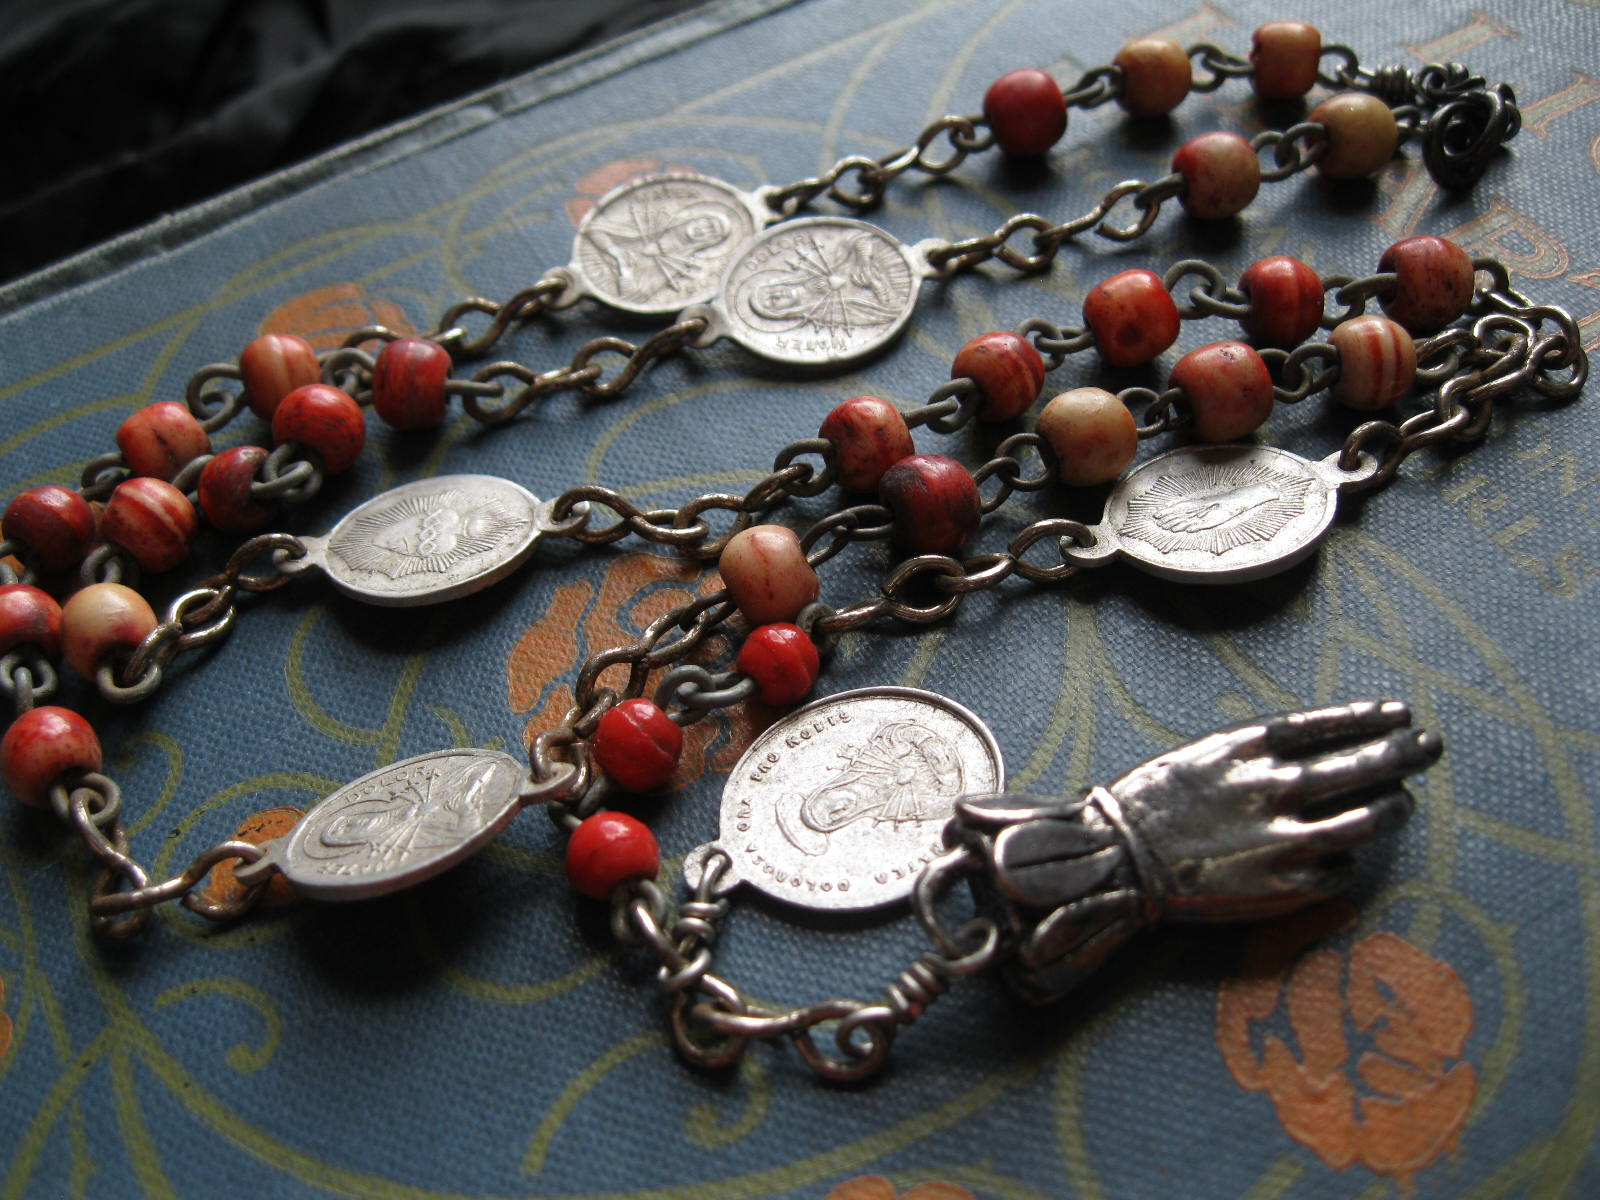 The Sleight of Hand Chaplet, by Feral Strumpet.